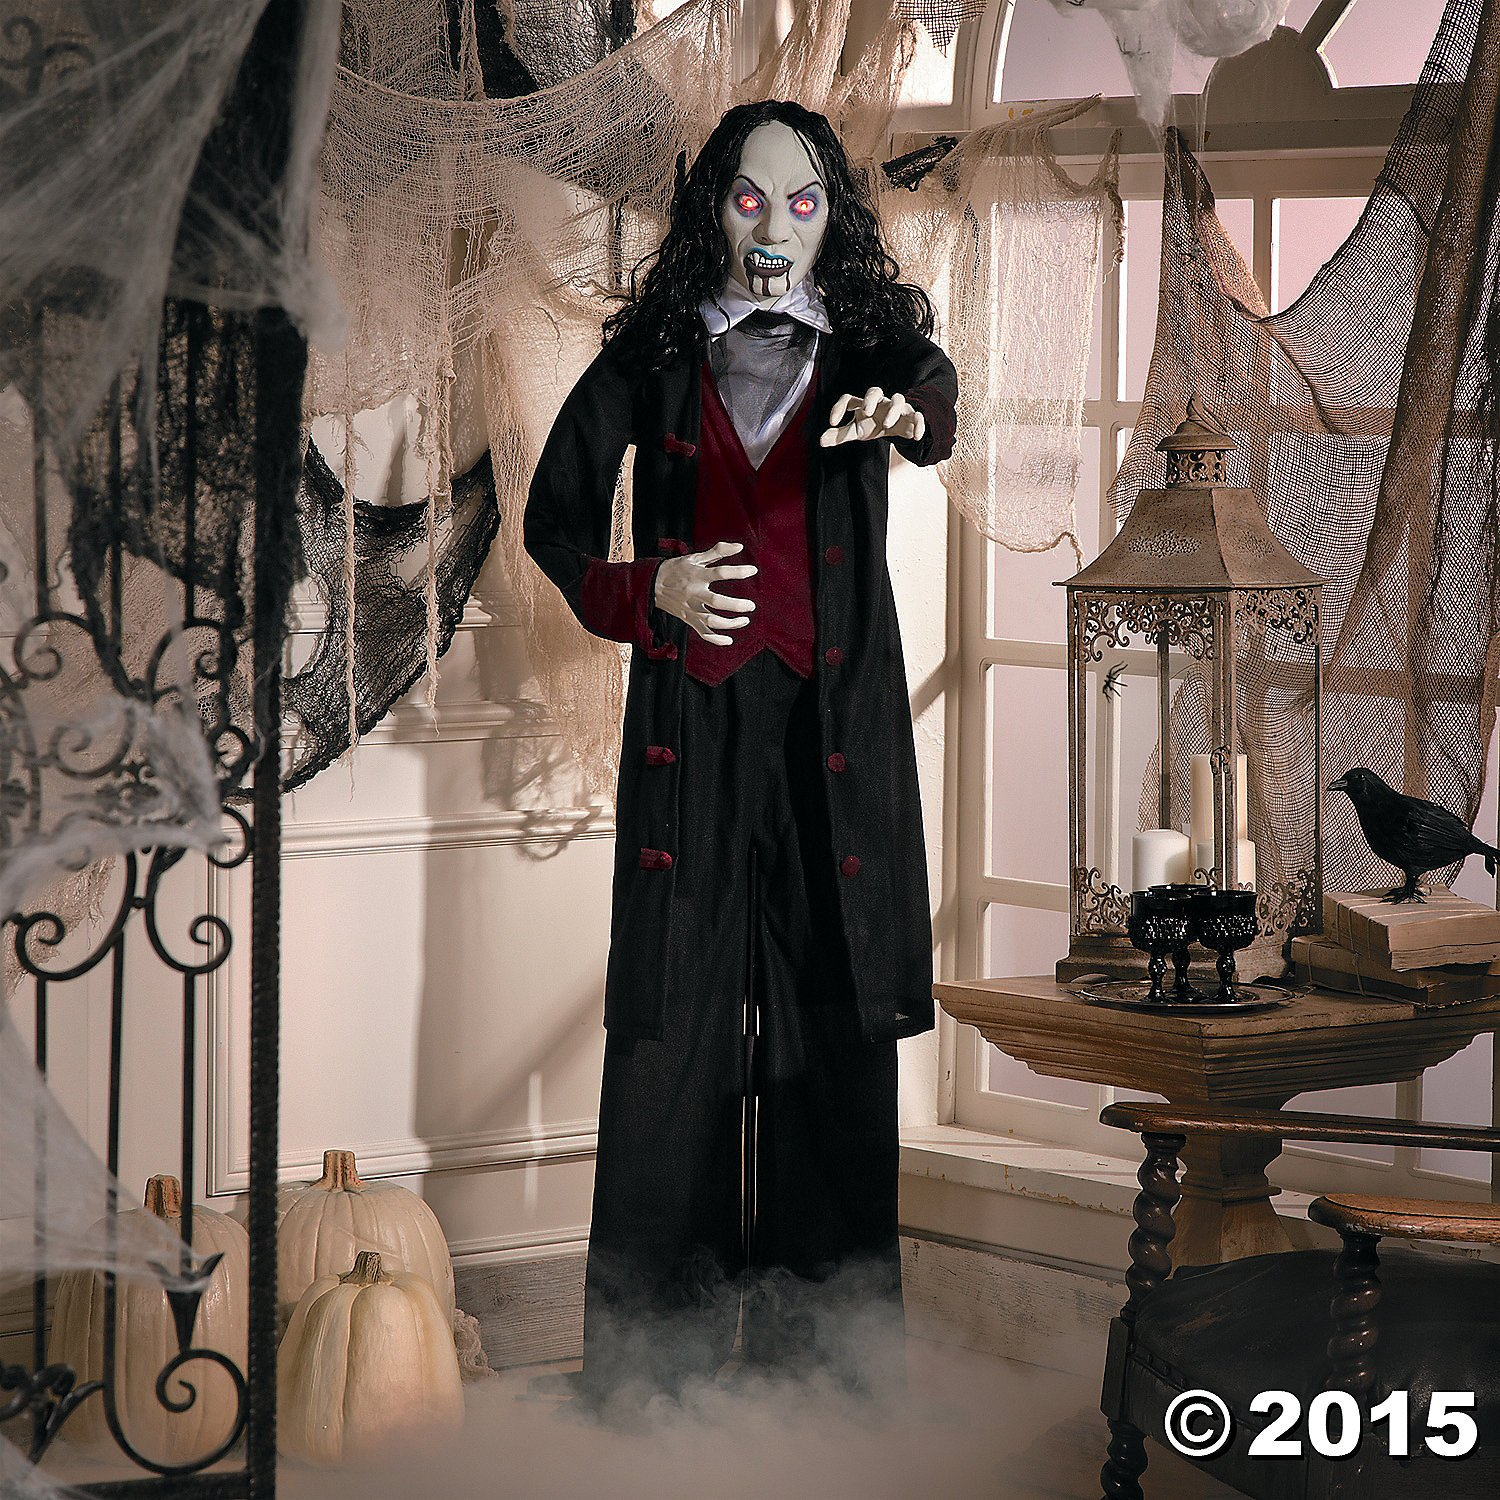 Amazon Gothic Vampire Man Halloween Spooky Creepy Evil Scary Decor Graveyard Haunted House Prop Fall Autumn Harvest Thanksgiving Home Accent